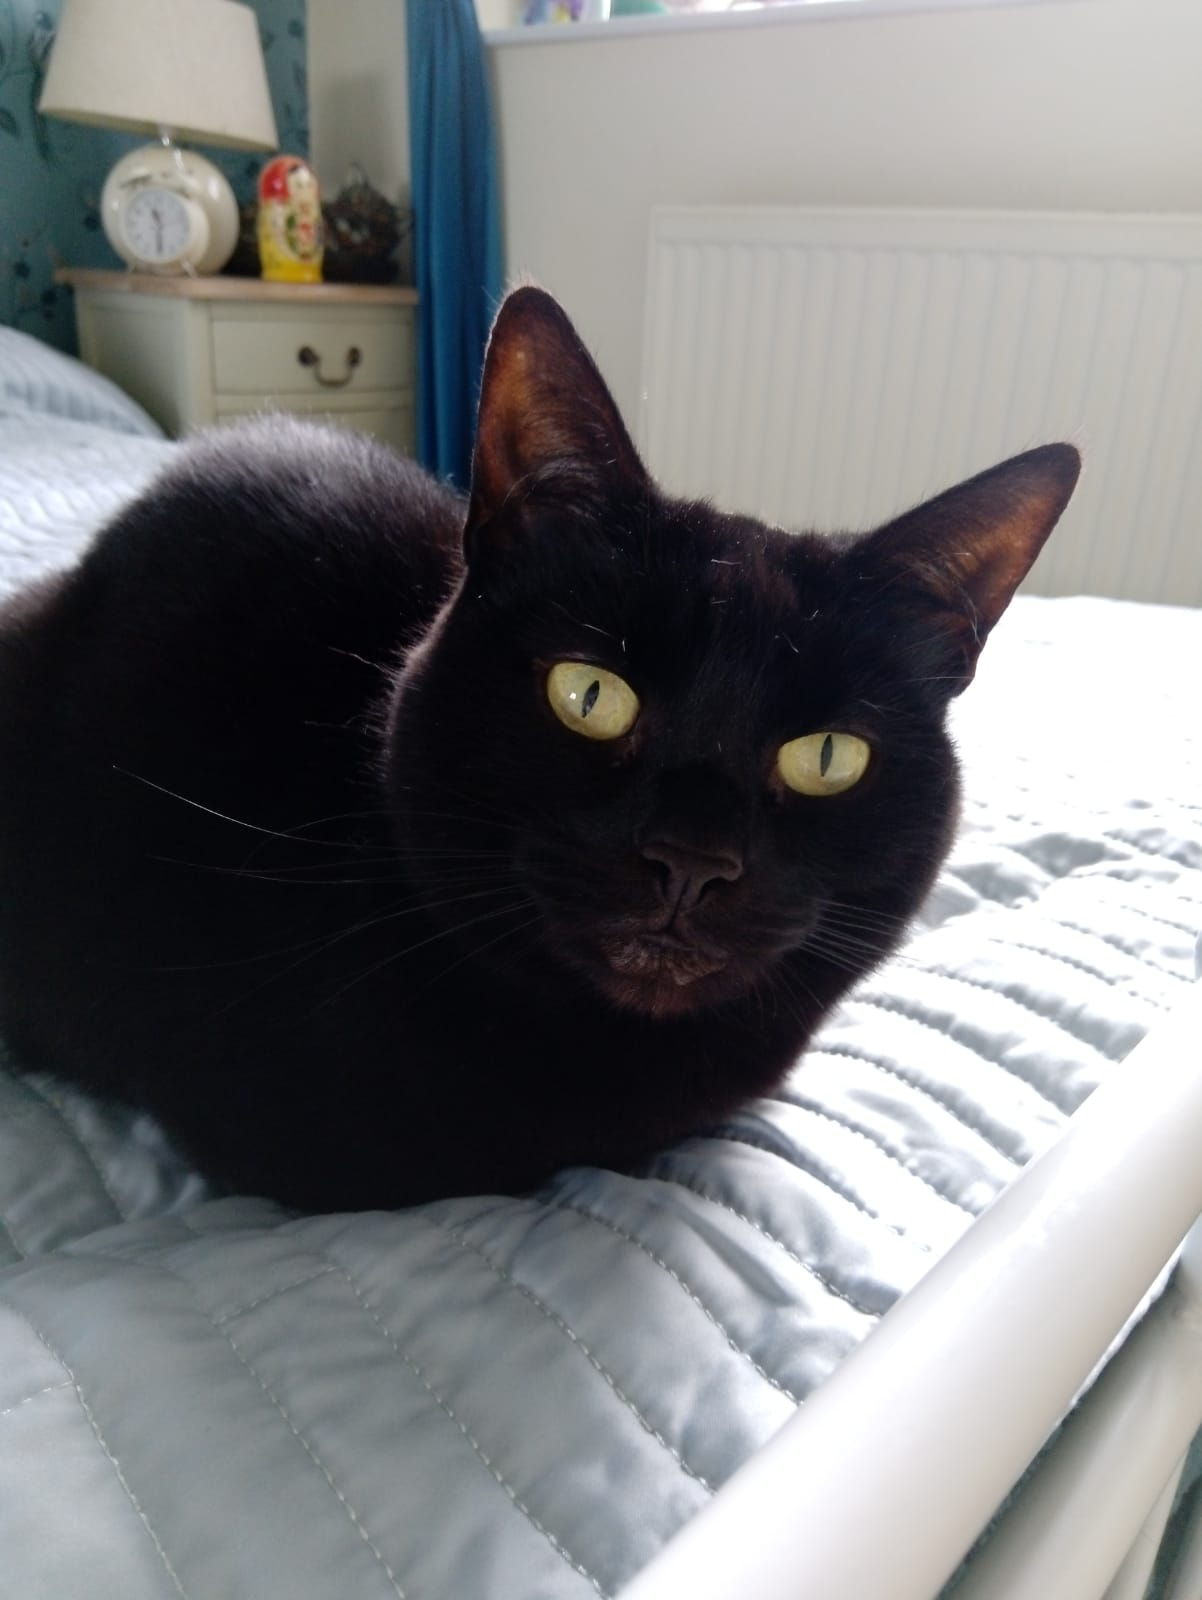 a sleek black cat with green eyes lies upon a bed